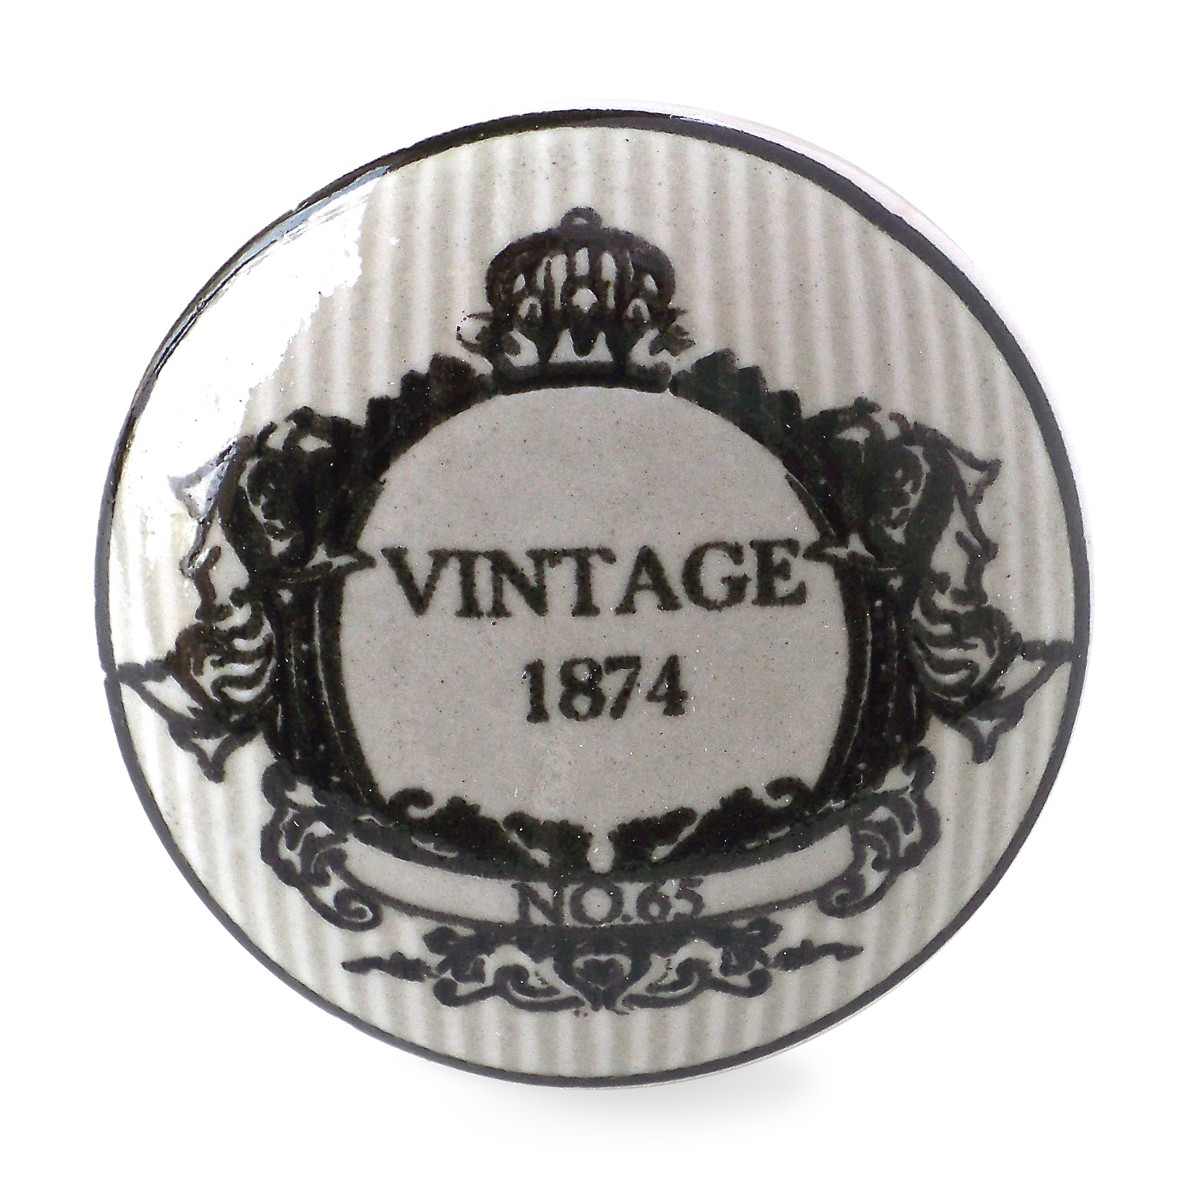 Bouton De Meuble Vintage Bouton De Meuble Vintage 1874 Campagne Shabby Chic